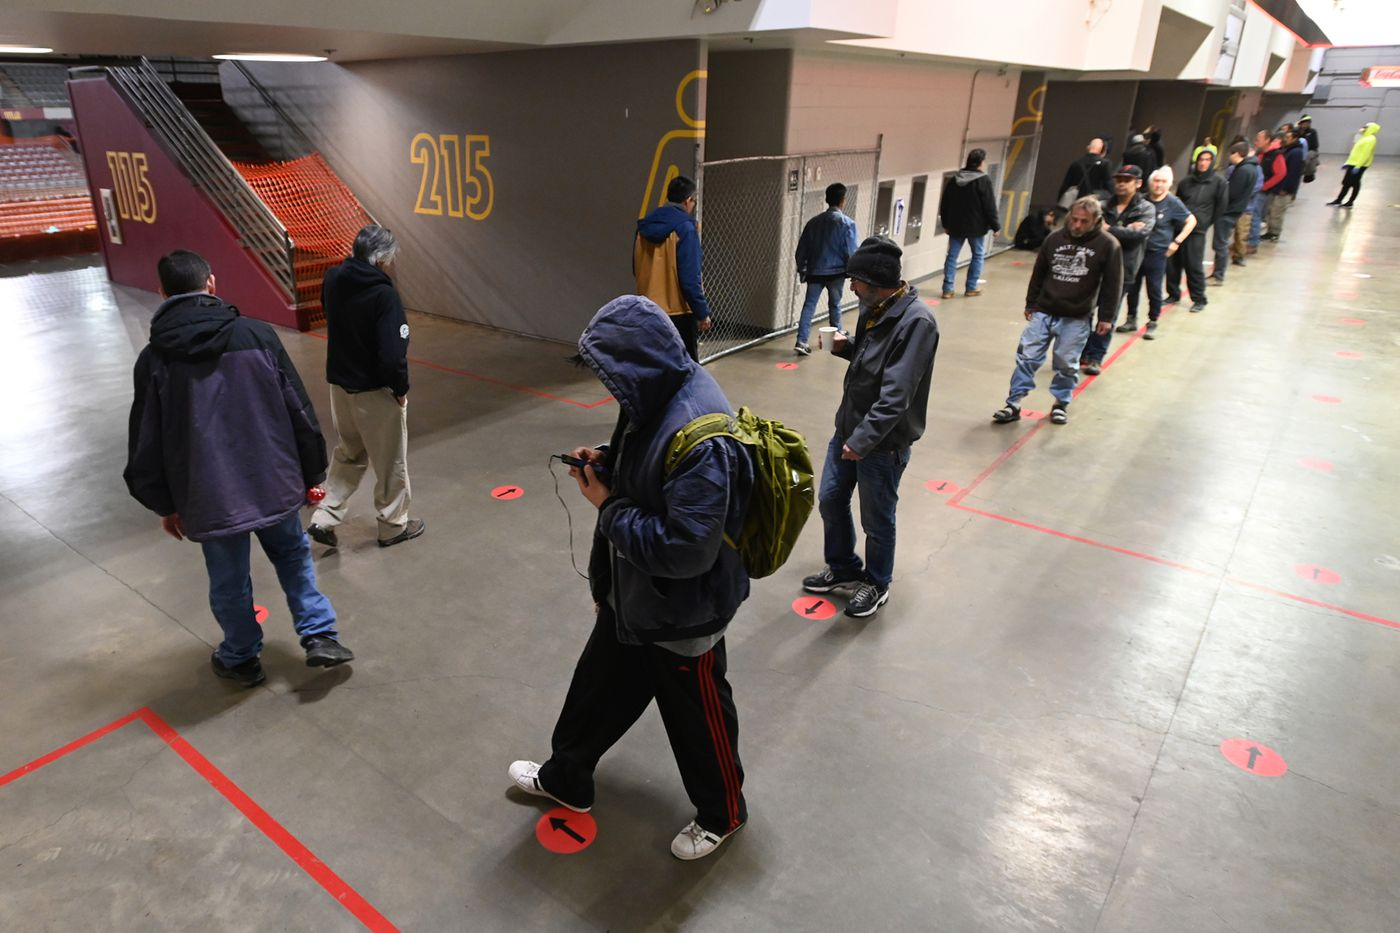 APRIL 29. Clients use dots on the floor to keep recommended social distance spacing while lunch is served at the Bean's Cafe emergency shelter inside the Sullivan Arena during the COVID-19 pandemic. (Bill Roth / ADN)